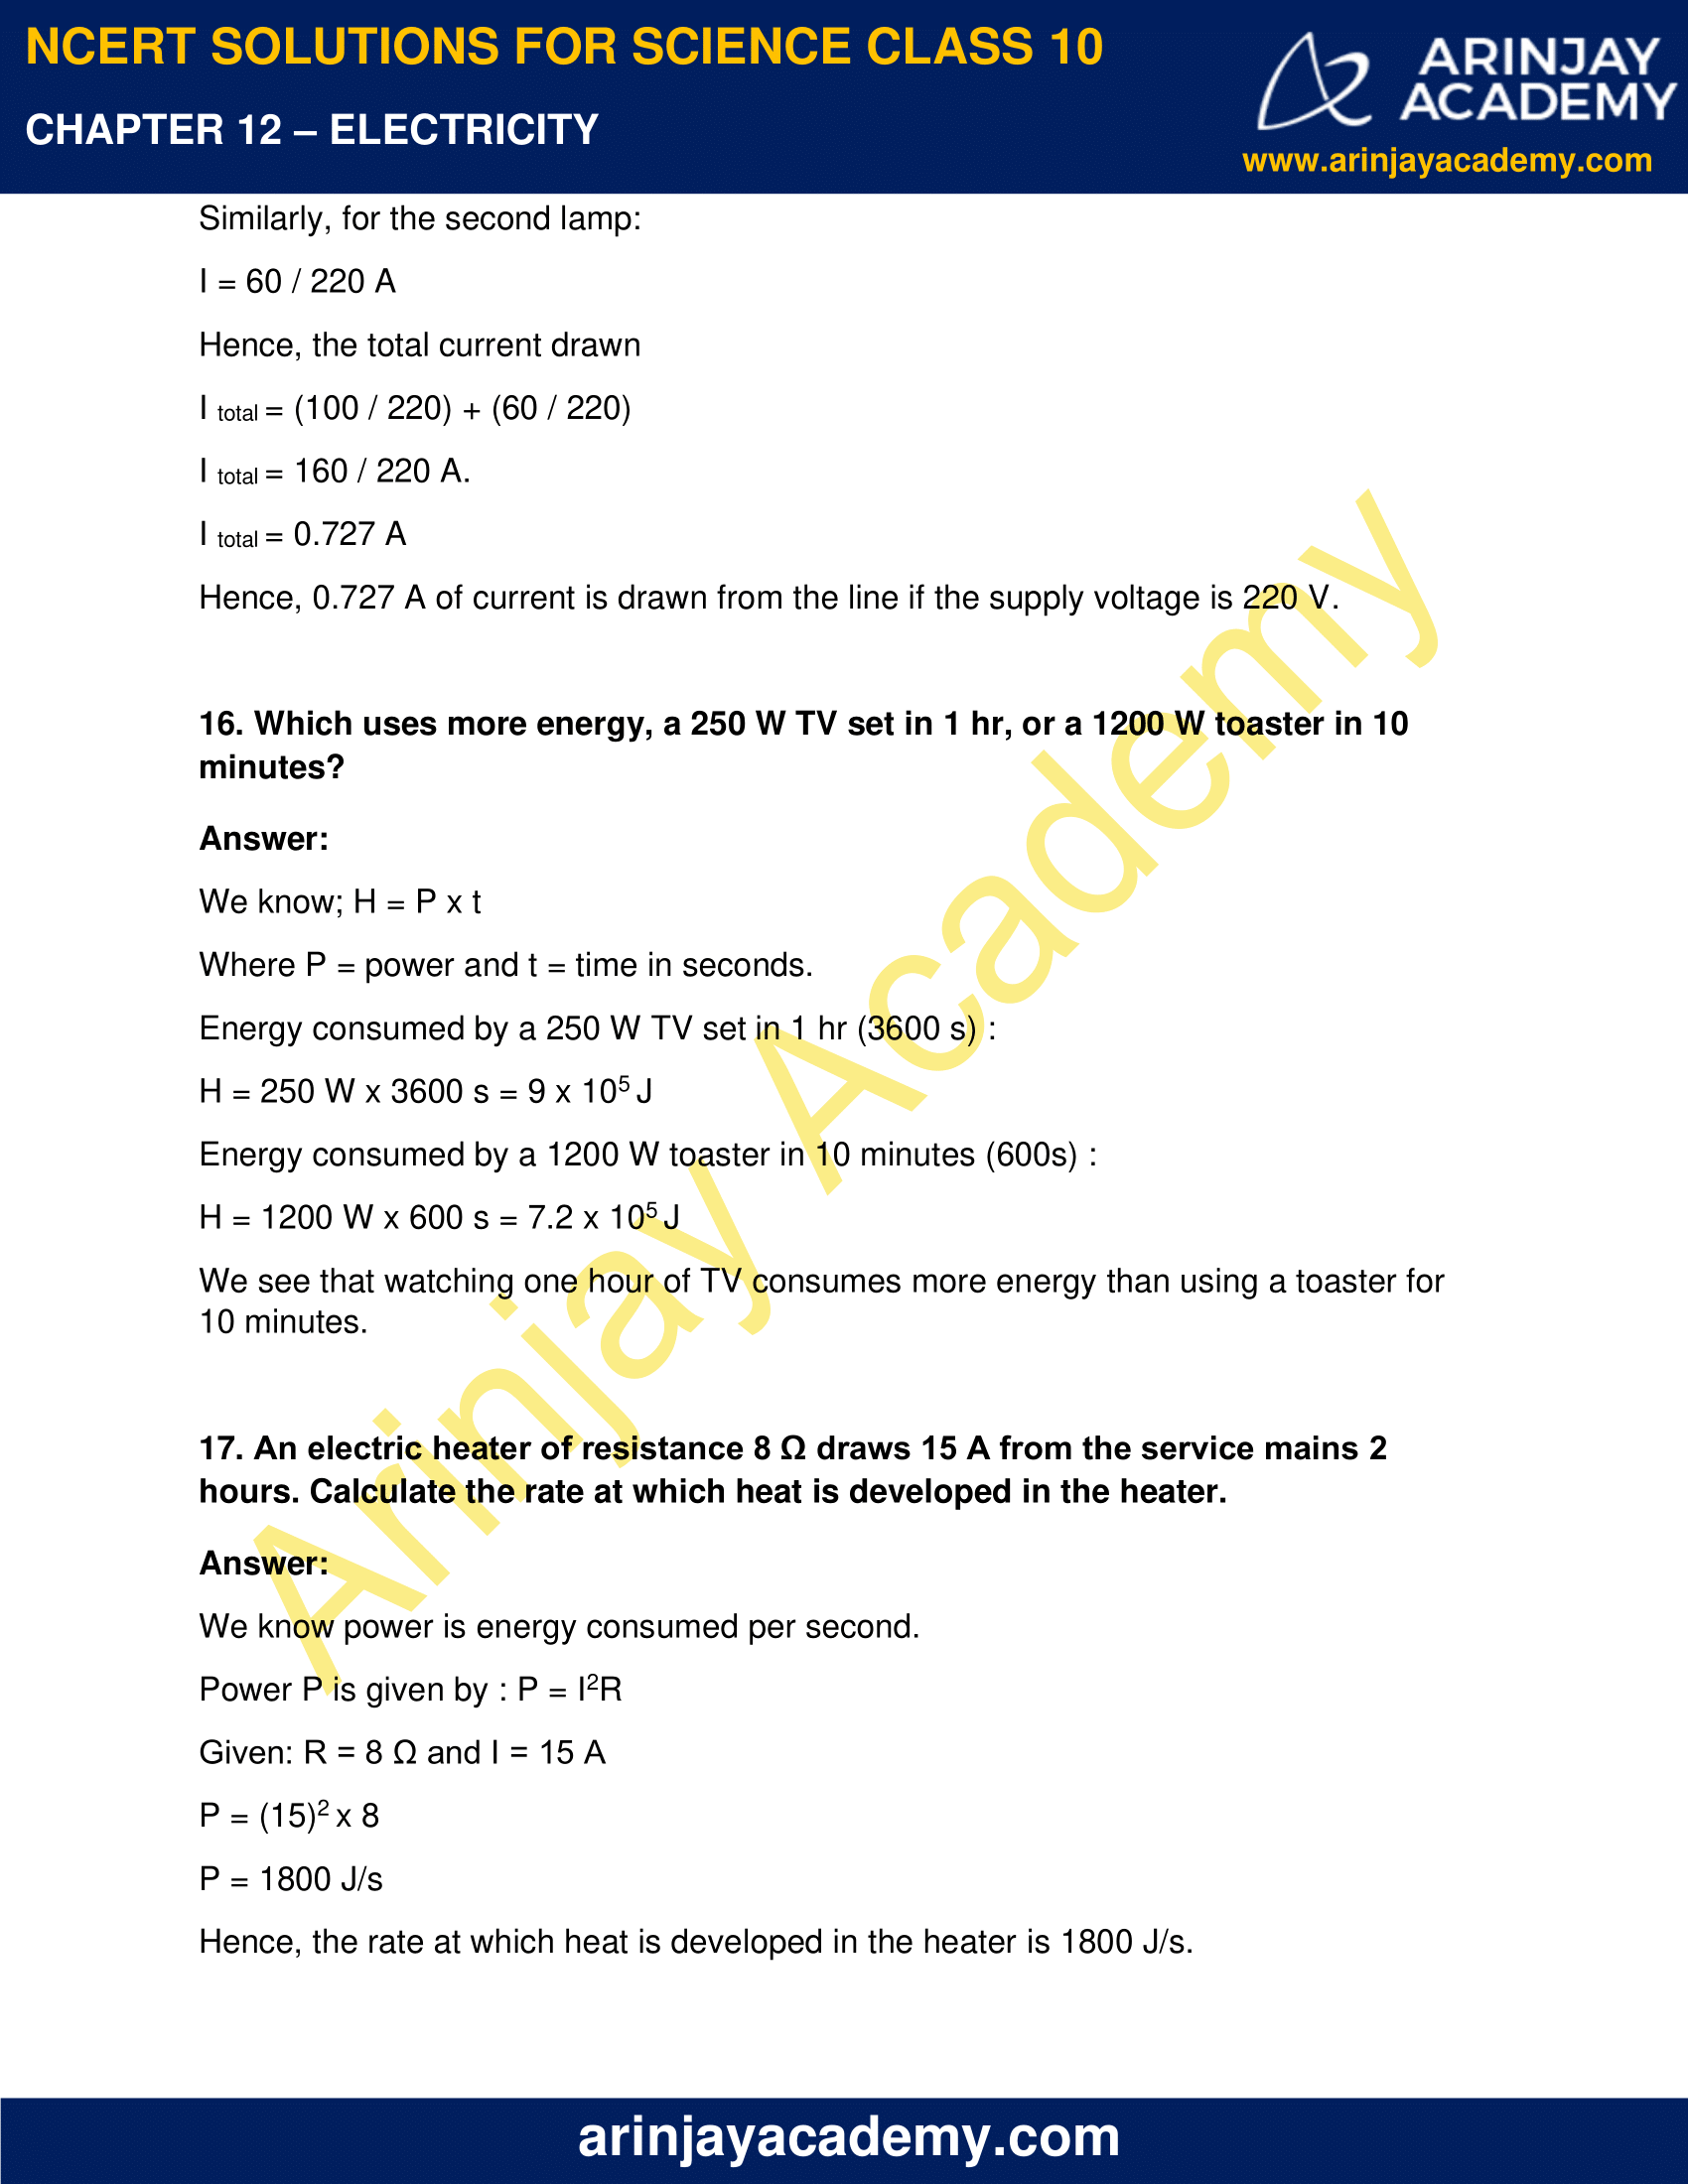 NCERT Solutions for Class 10 Science Chapter 12 Electricity image 21